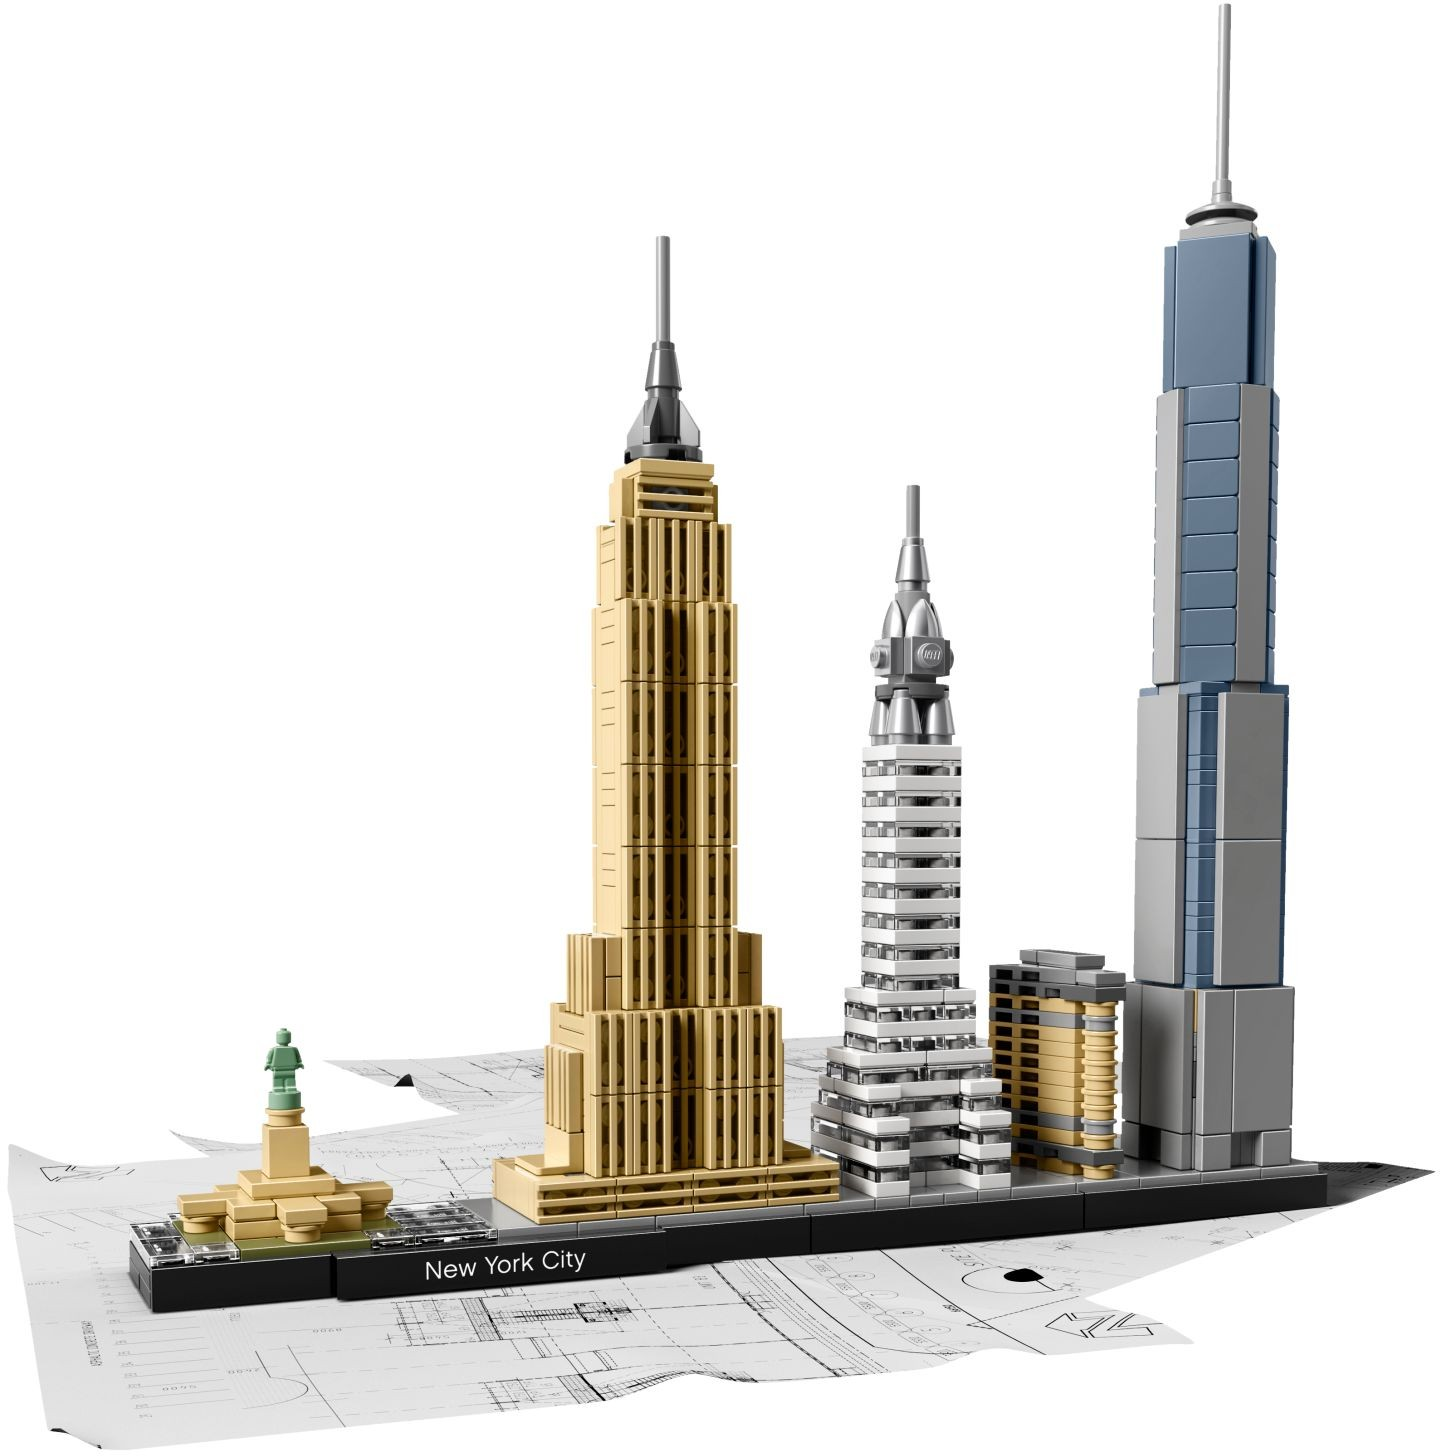 lego architecture 2016 sets new york city venice berlin